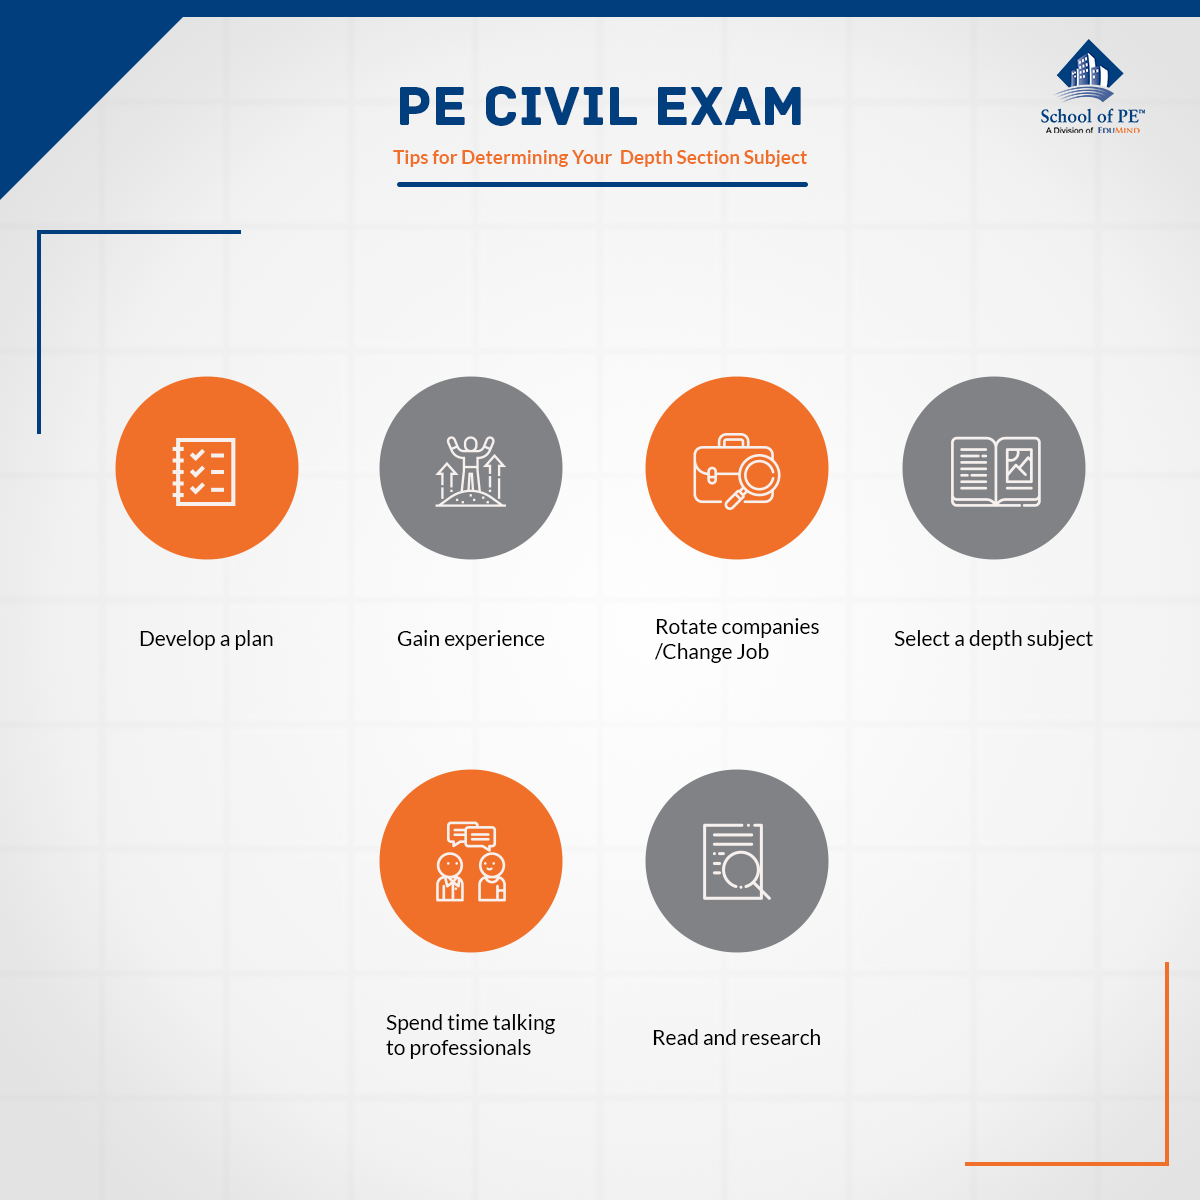 Tips for Determining Your PE Civil Exam Depth Section Subject